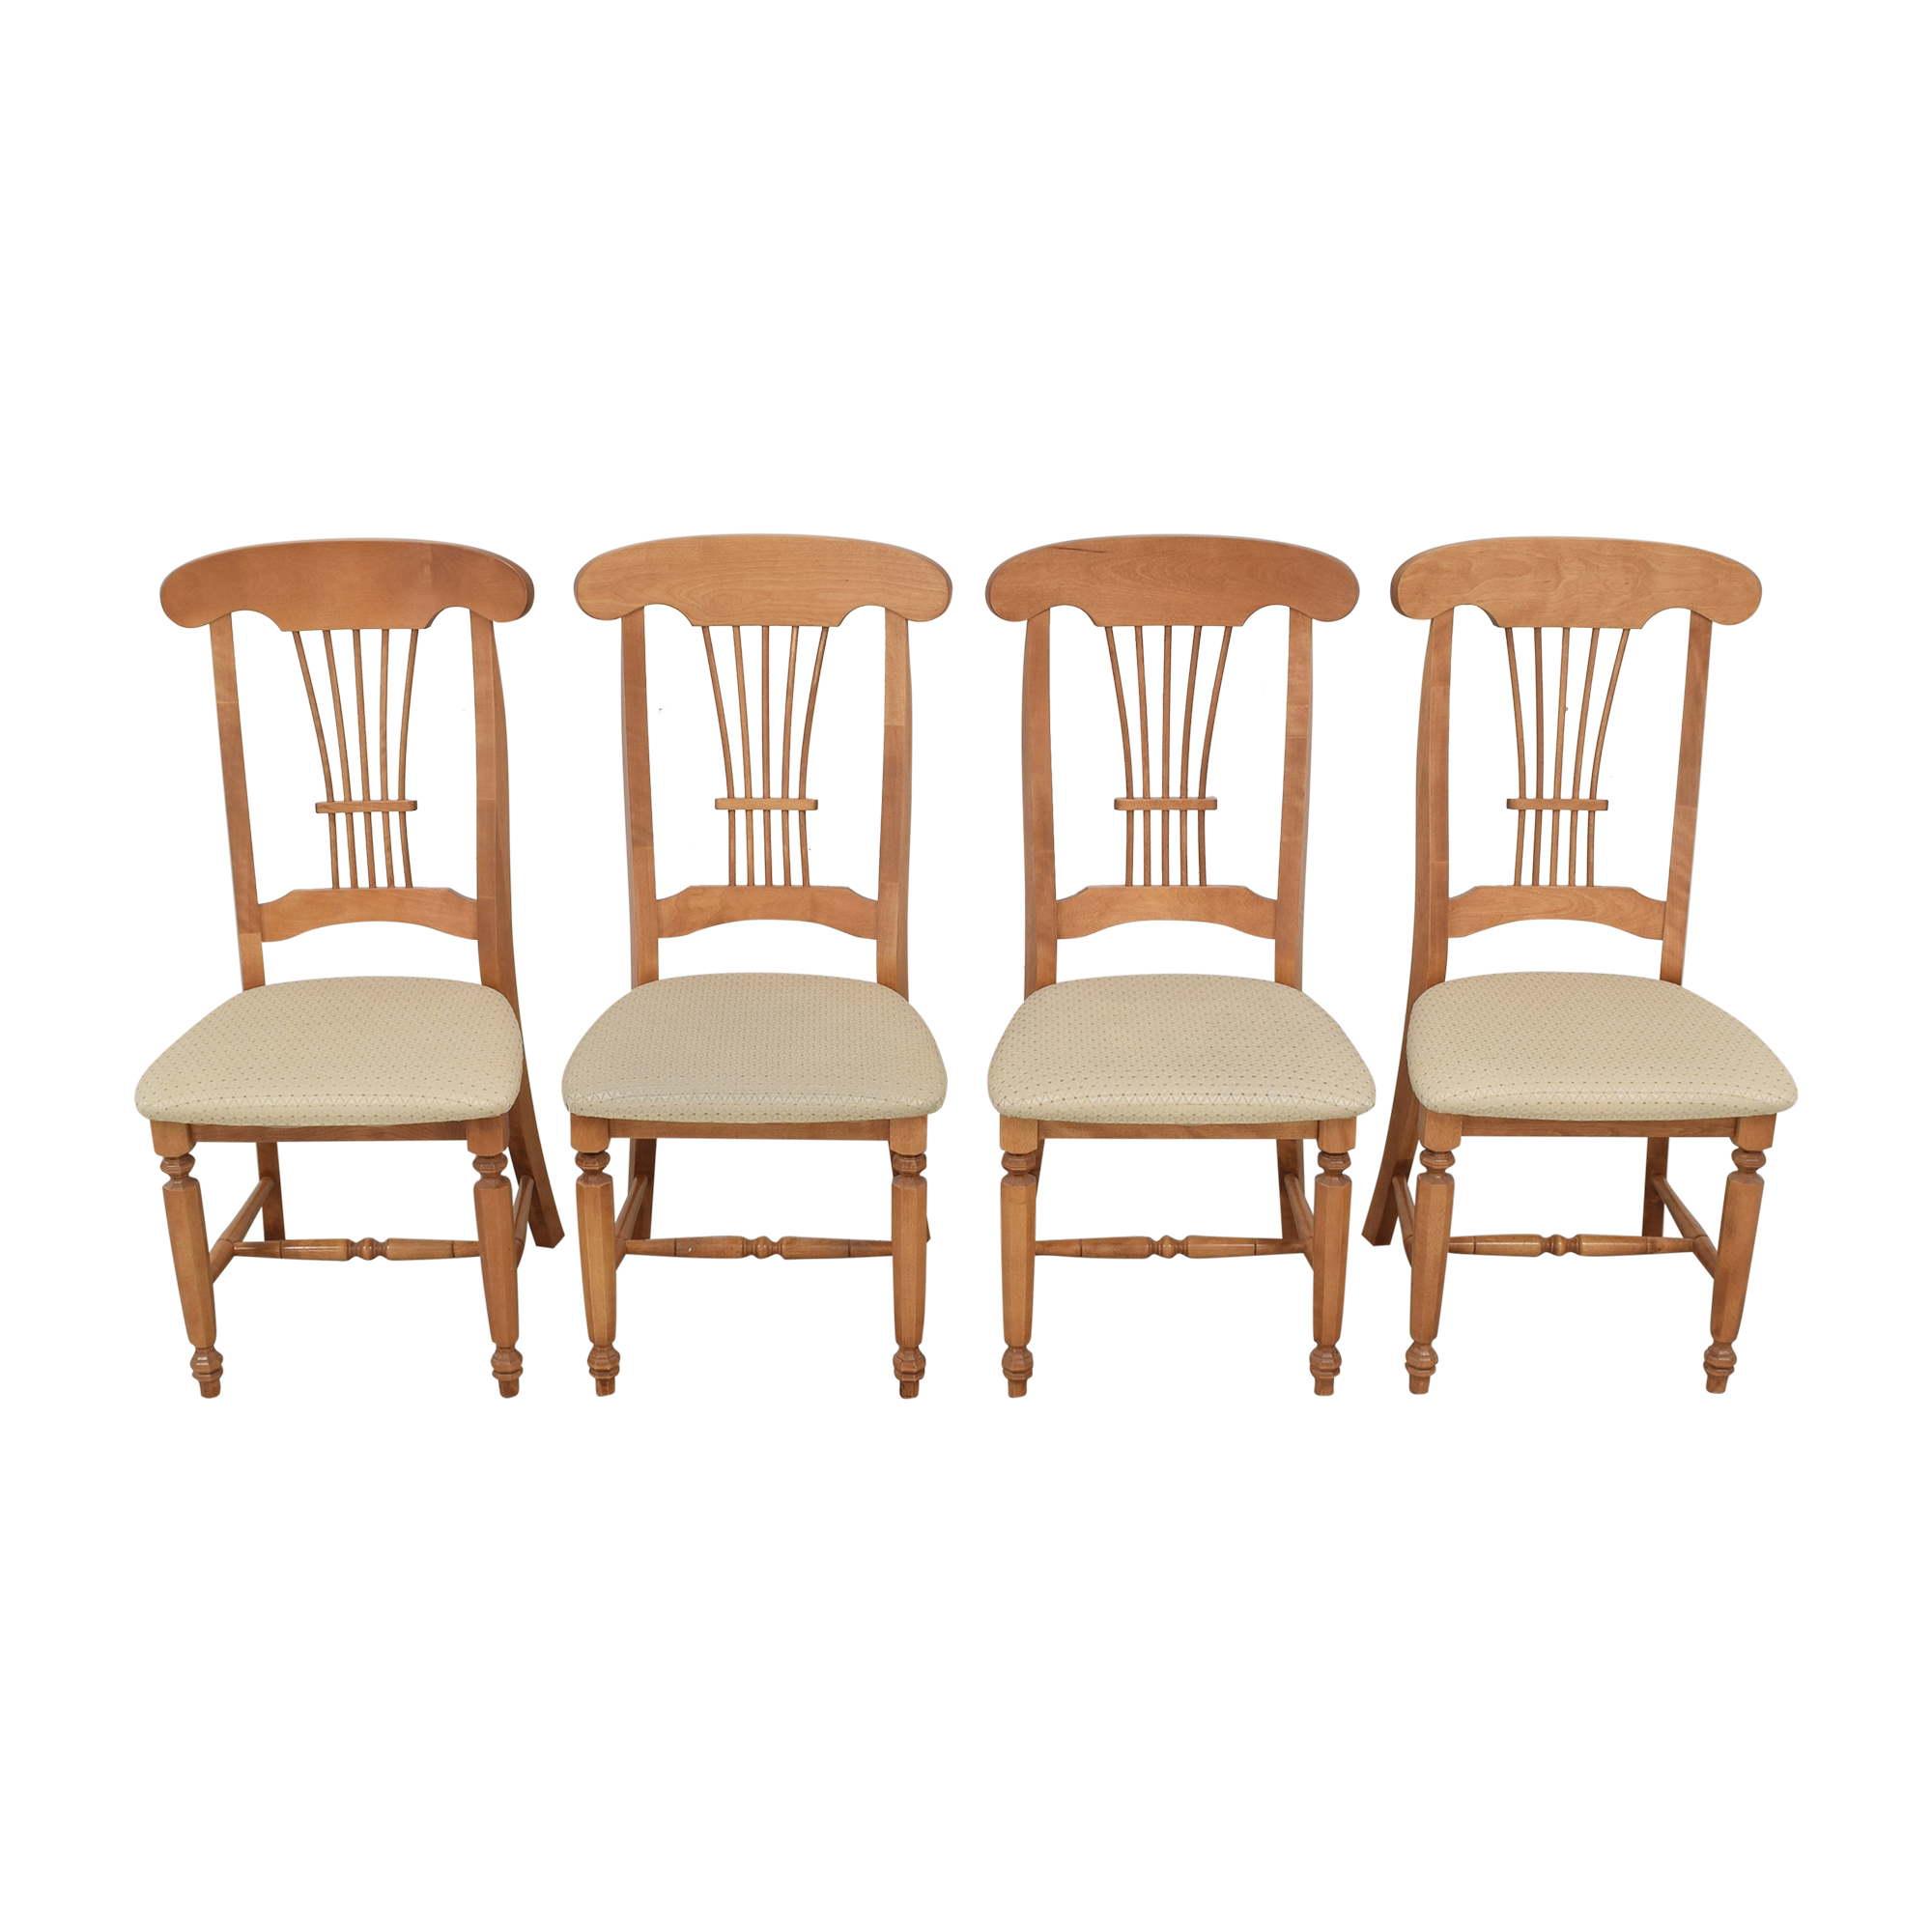 Canadel Canadel Upholstered Dining Chairs second hand